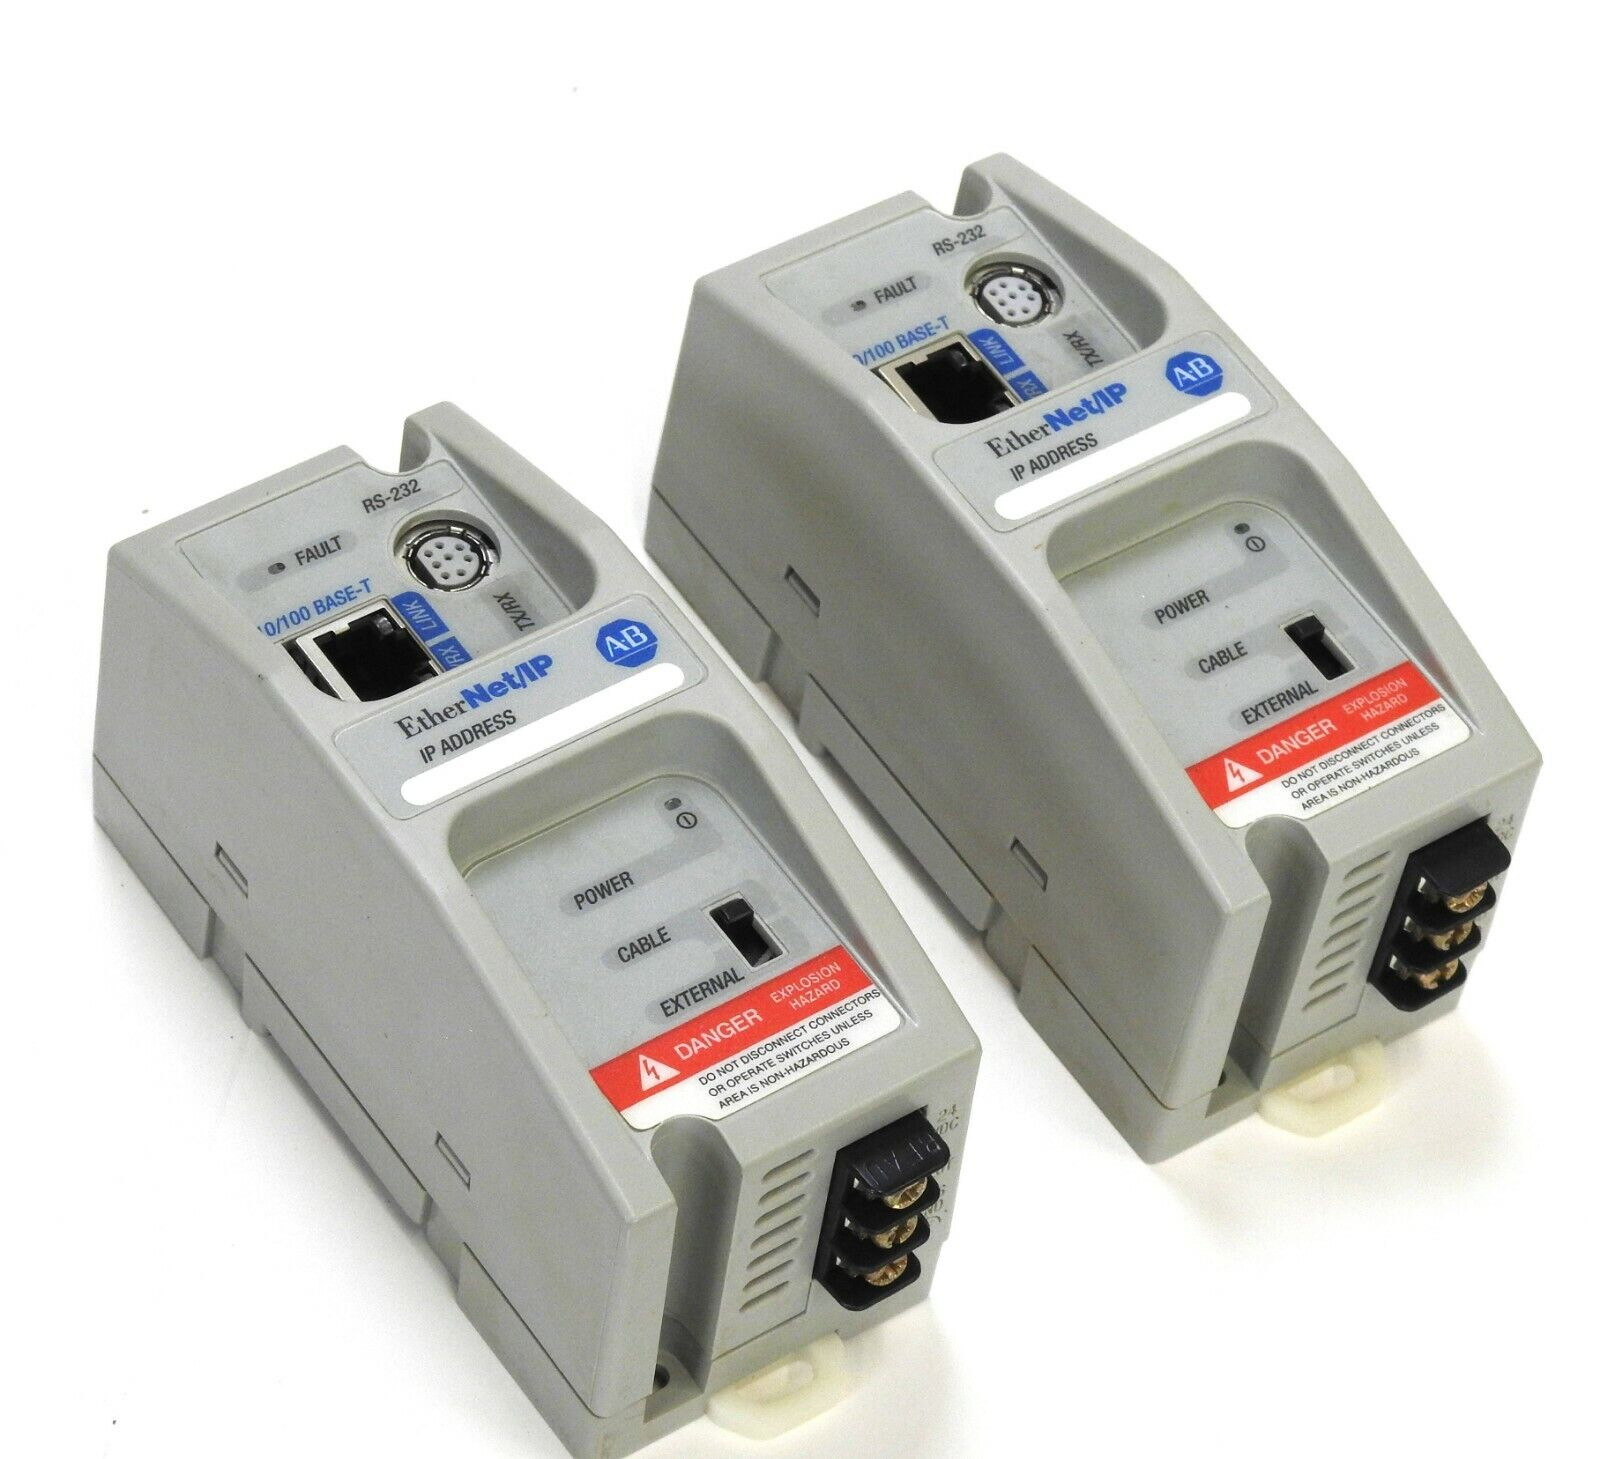 Allen Bradley Ethernet IP